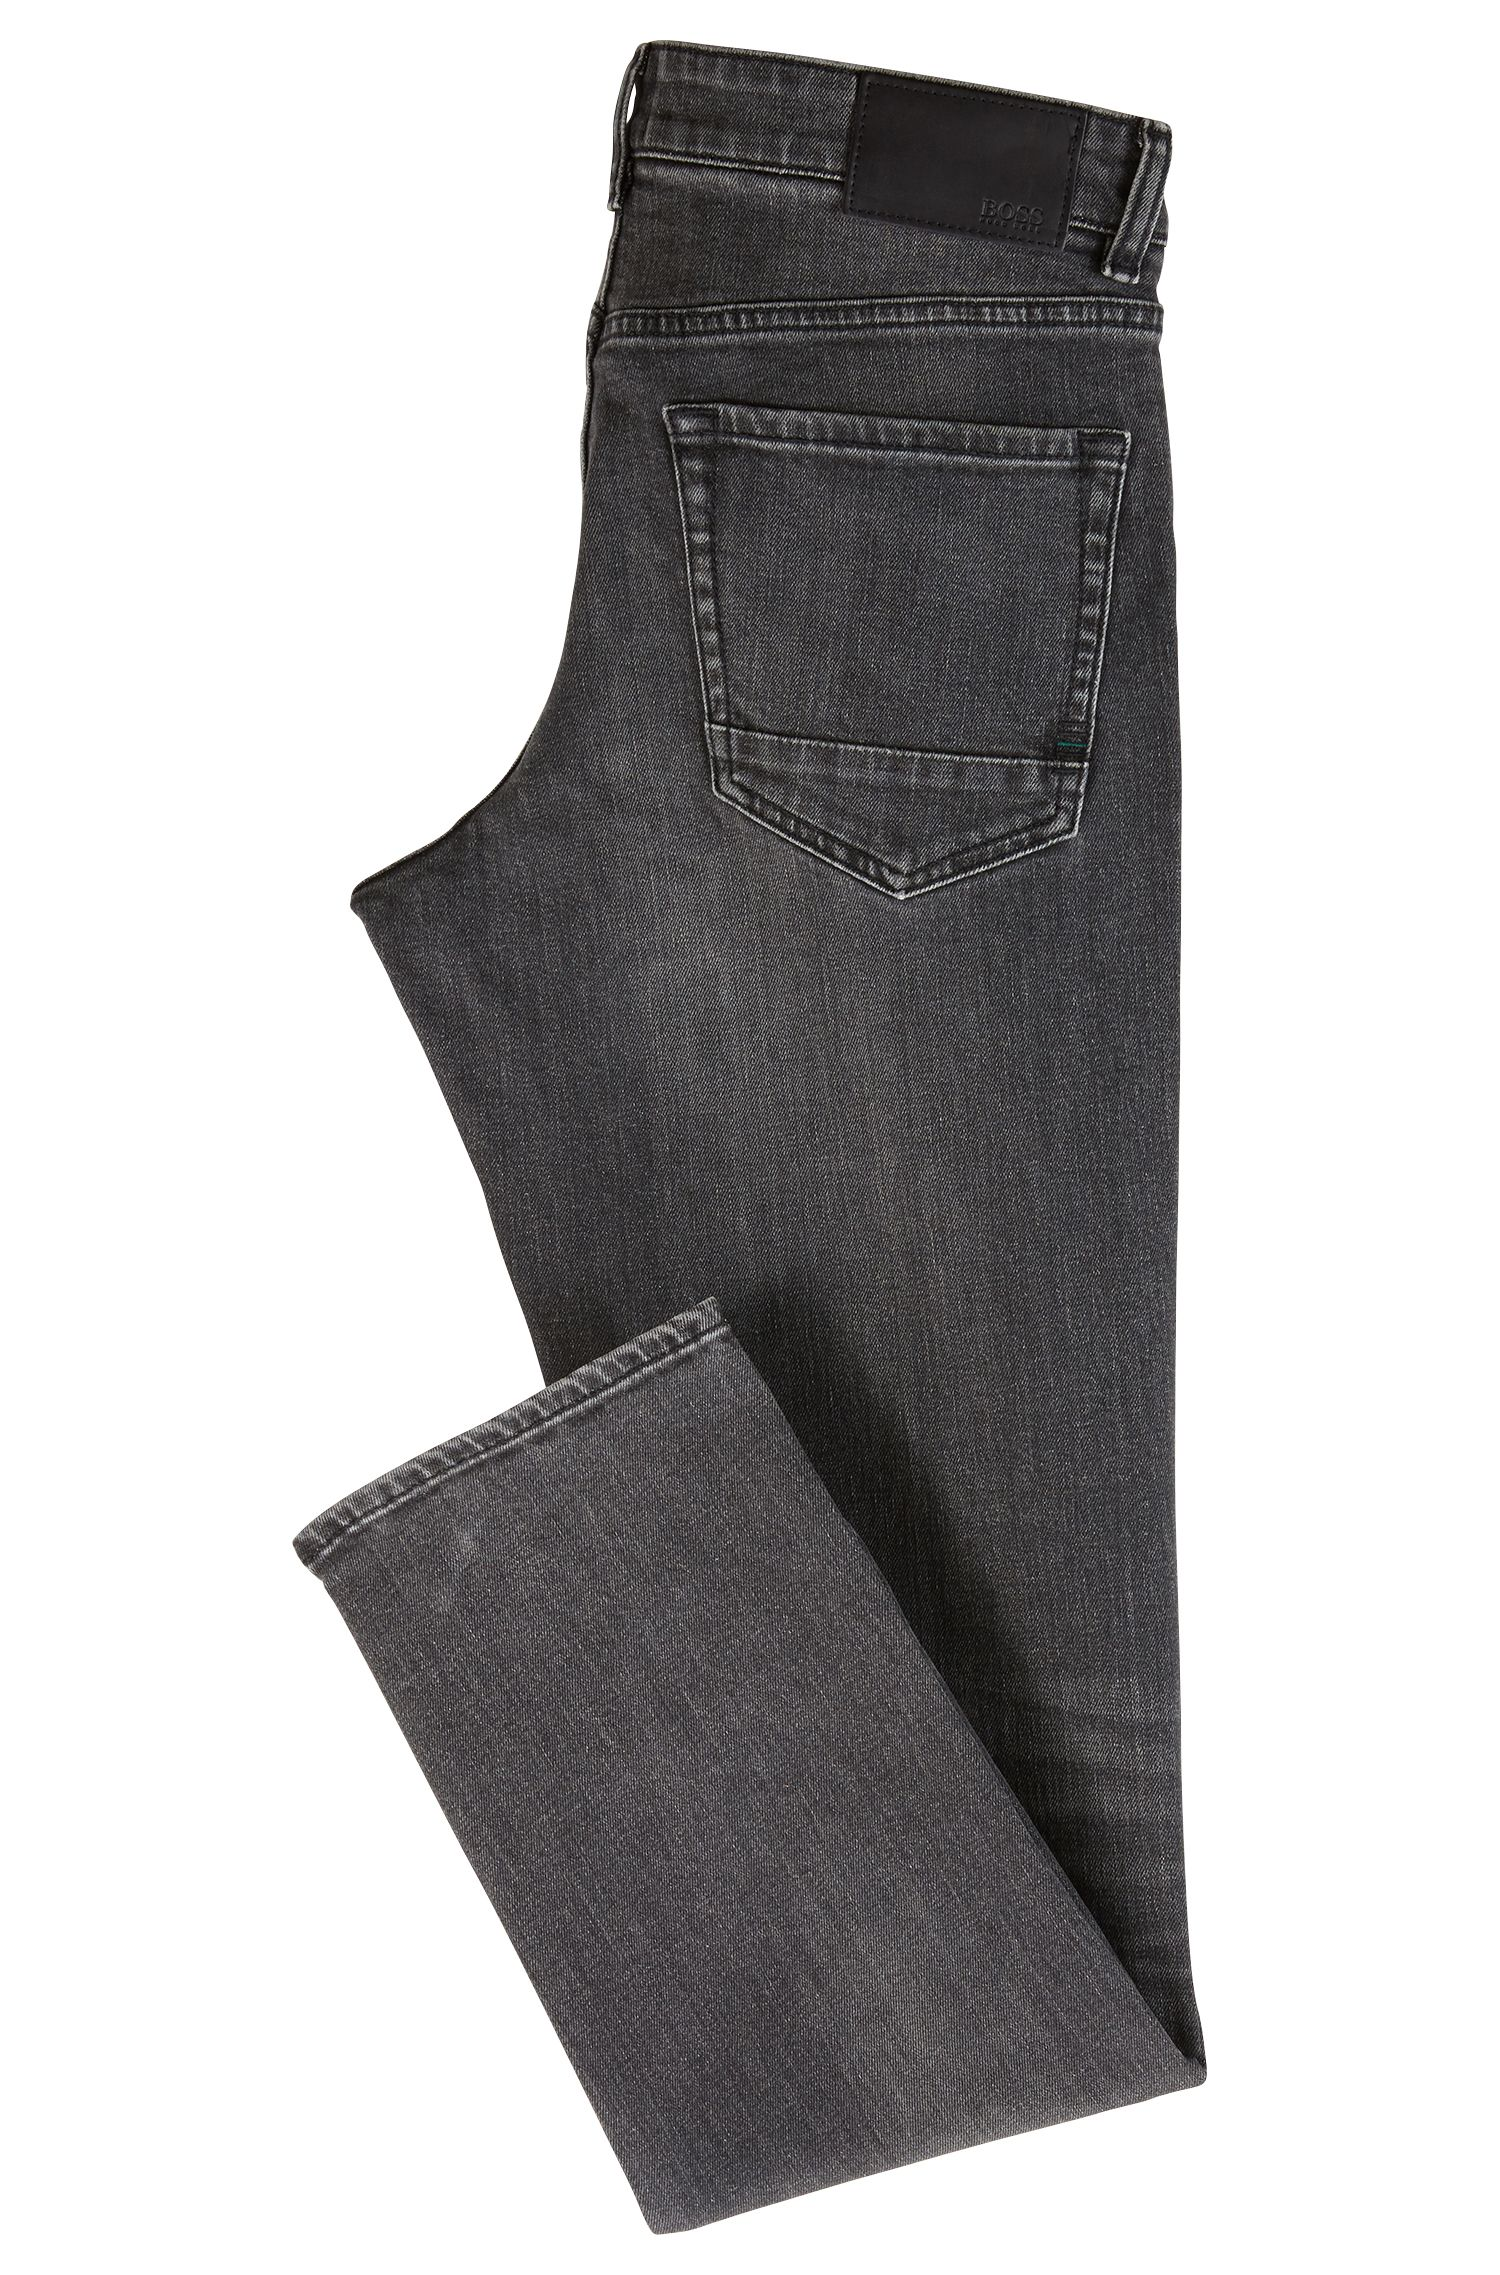 Jeans regular fit in denim elasticizzato nero, Grigio antracite